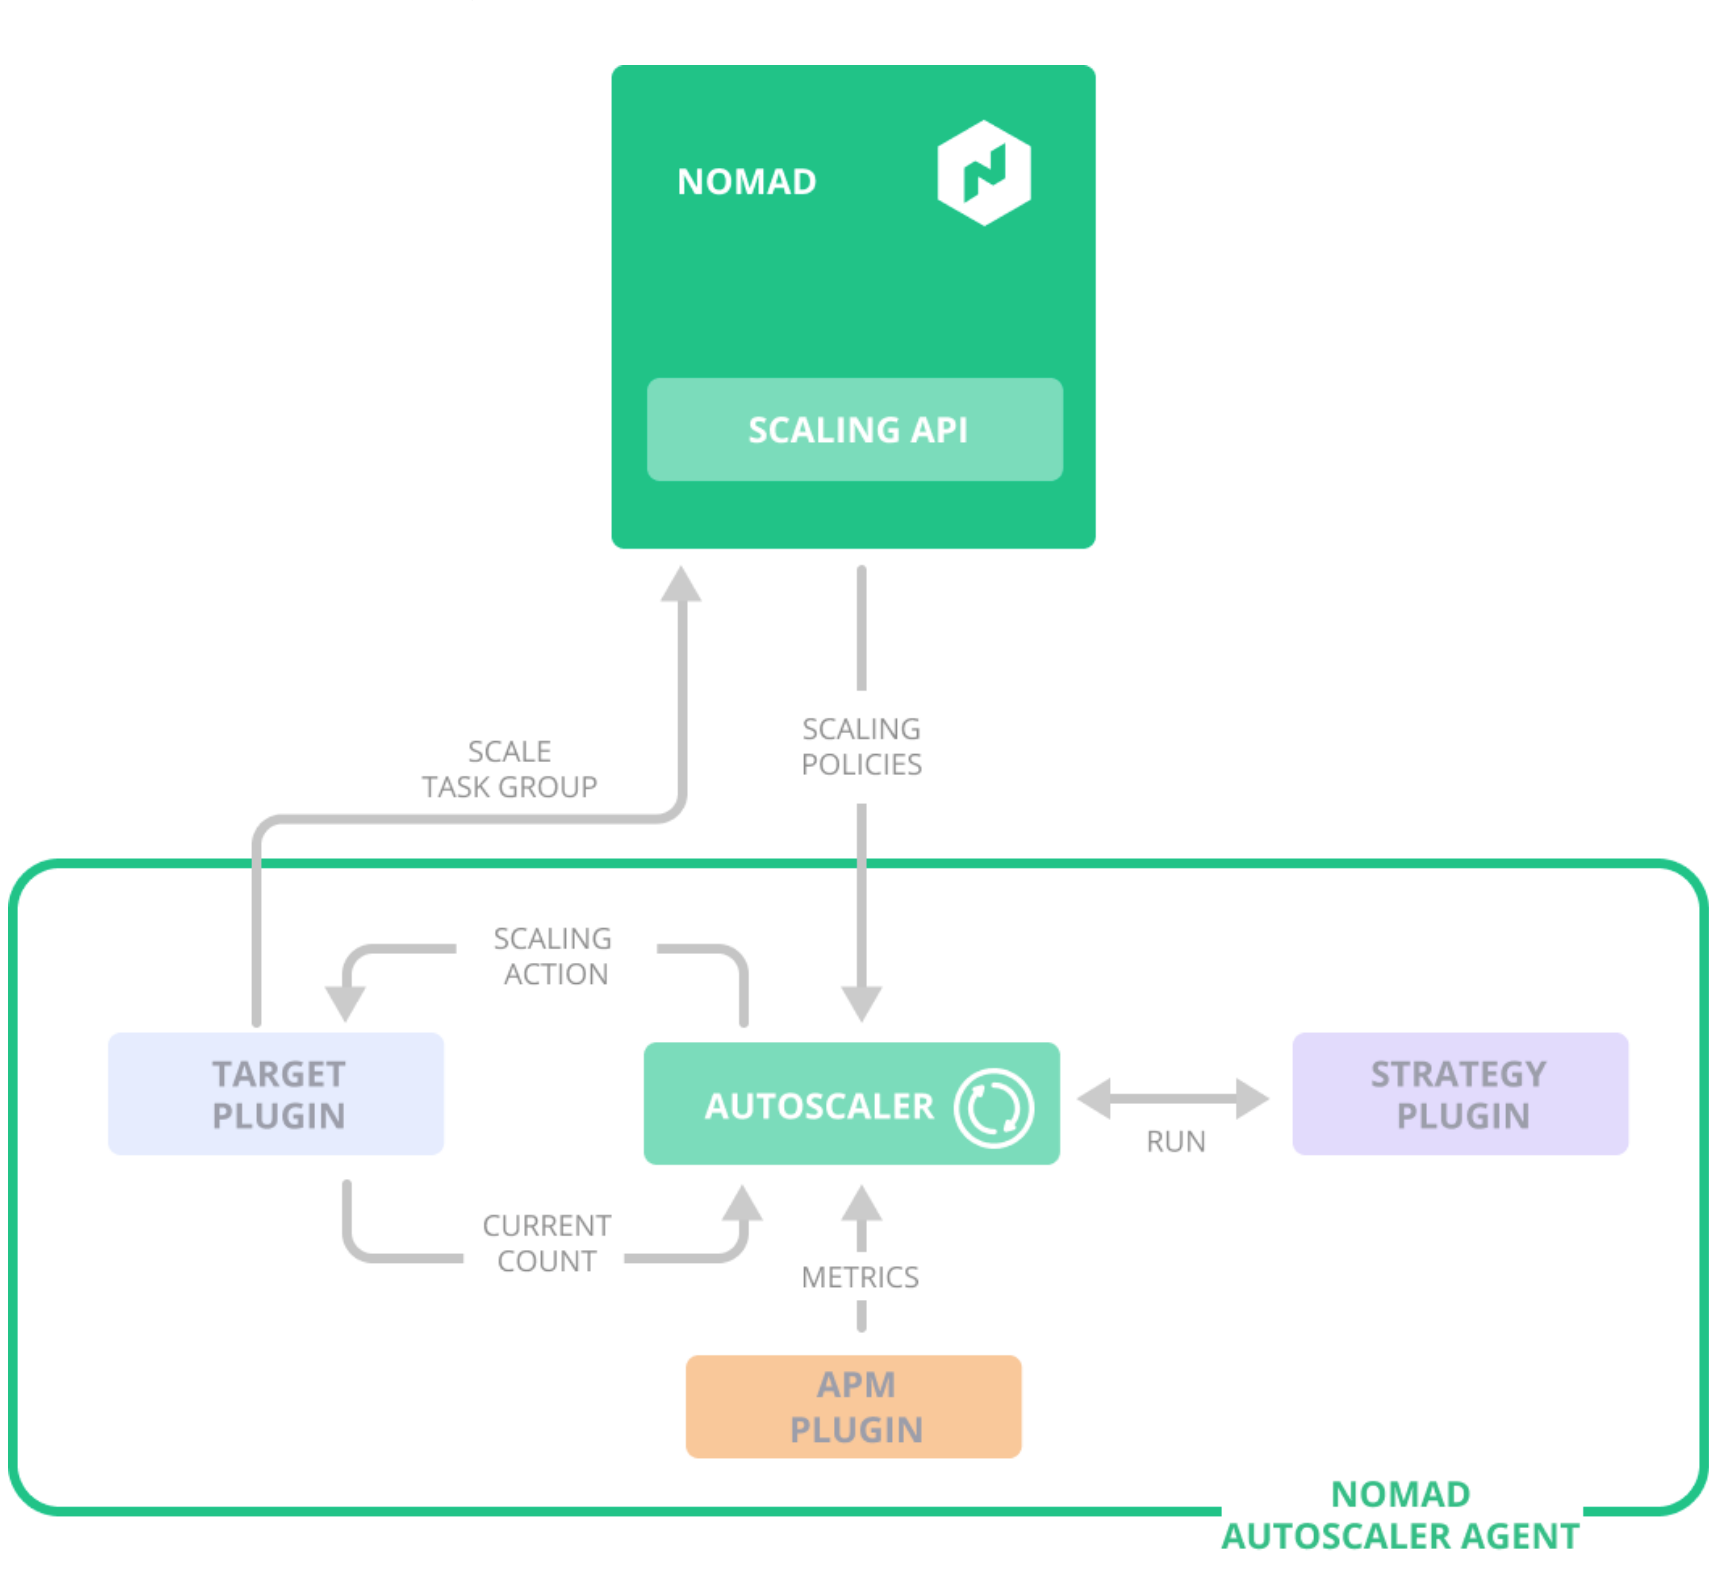 illustration of the interaction between the Nomad Autoscaler, its plugins, and Nomad's APIs. (source: HashiCorp Blog)